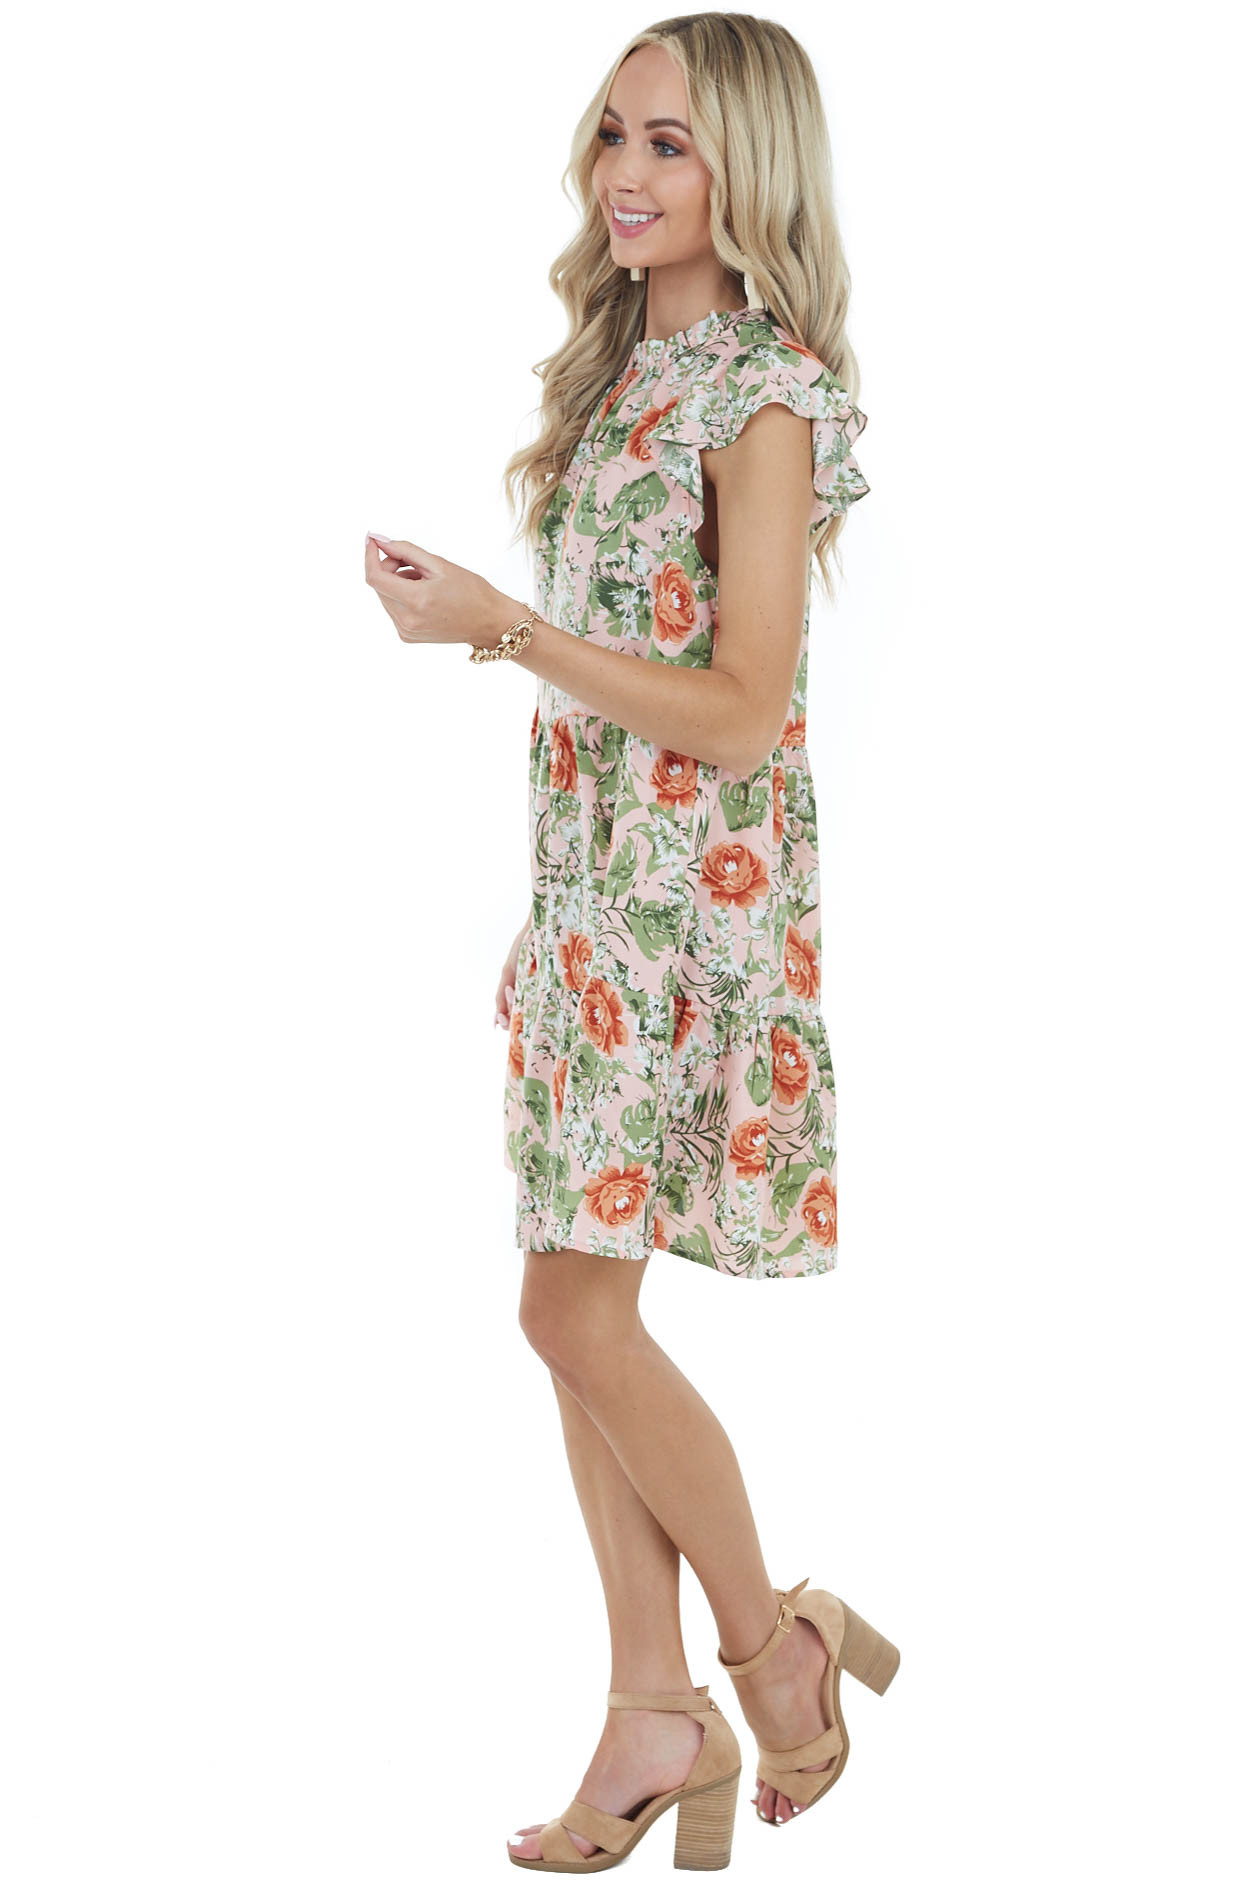 Dusty Blush Floral Print Cap Sleeve Dress with Ruffle Detail